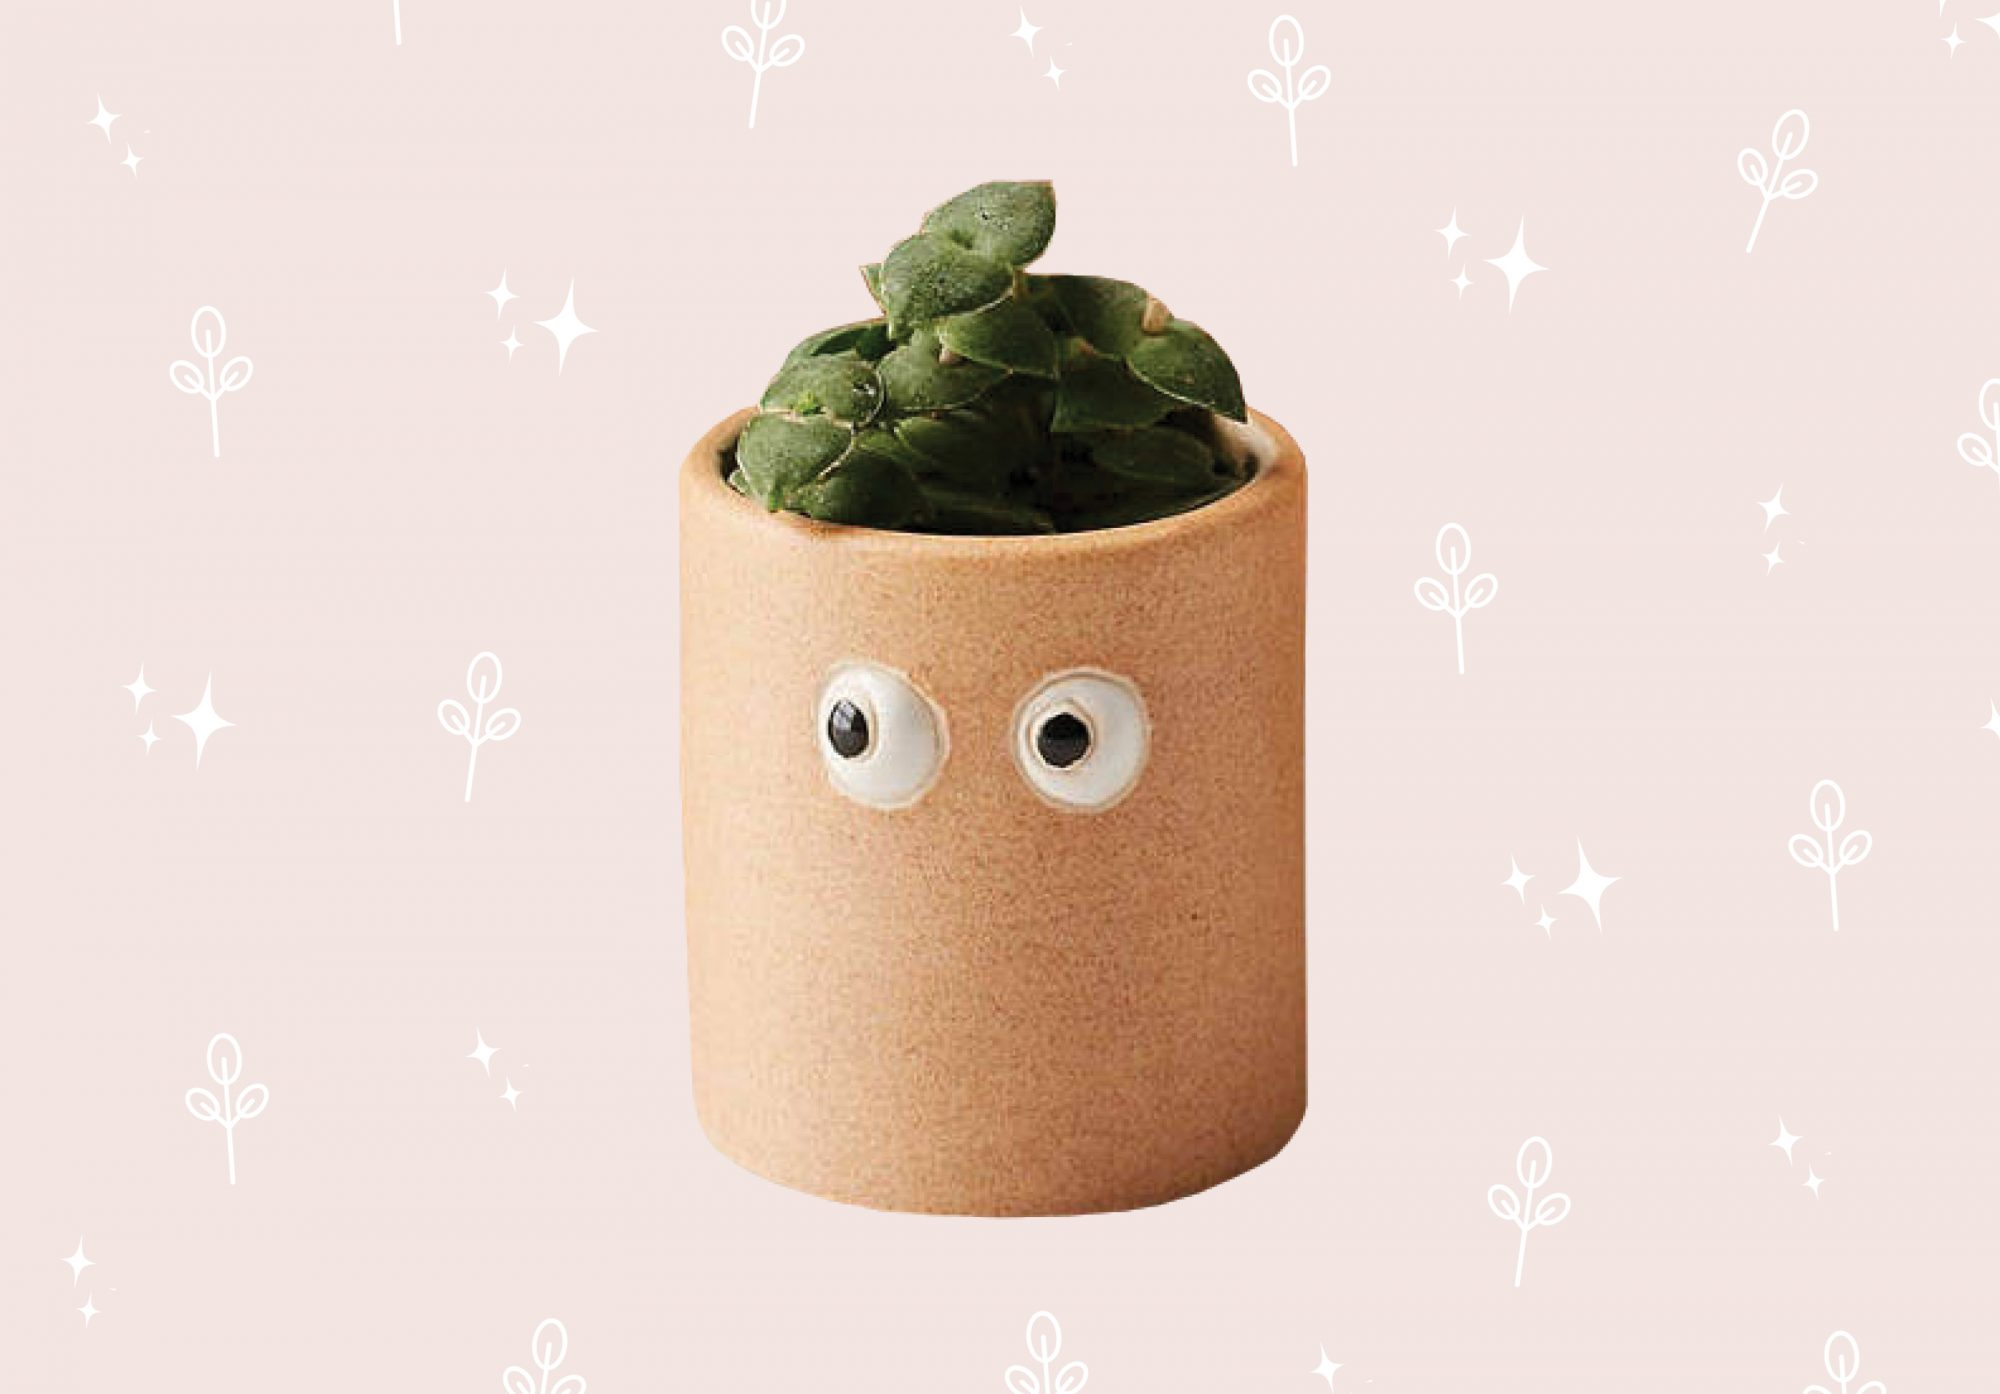 Planter with googly eyes on pink background.